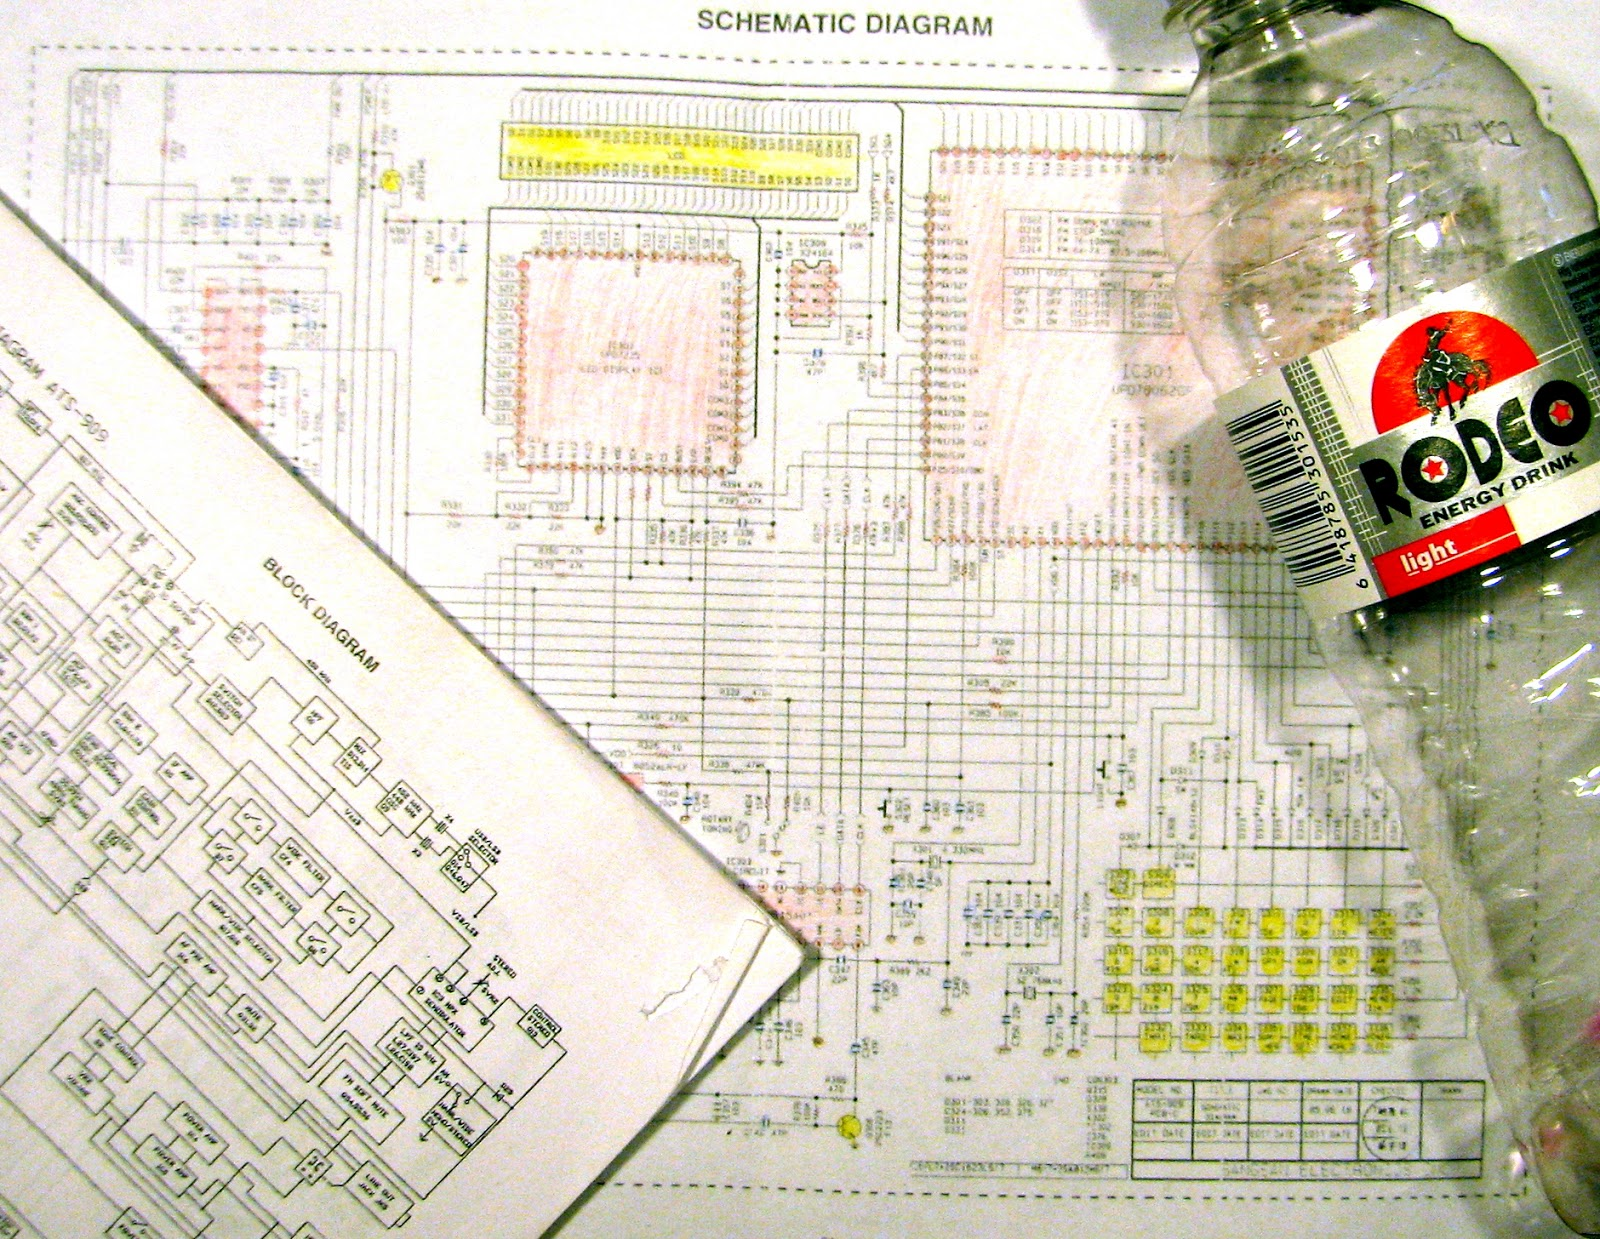 Absorptions Enchanting Subcarriers On Fm Part 2 Block Diagram Image Papers Titled And Schematic Lying The Table Or Floor